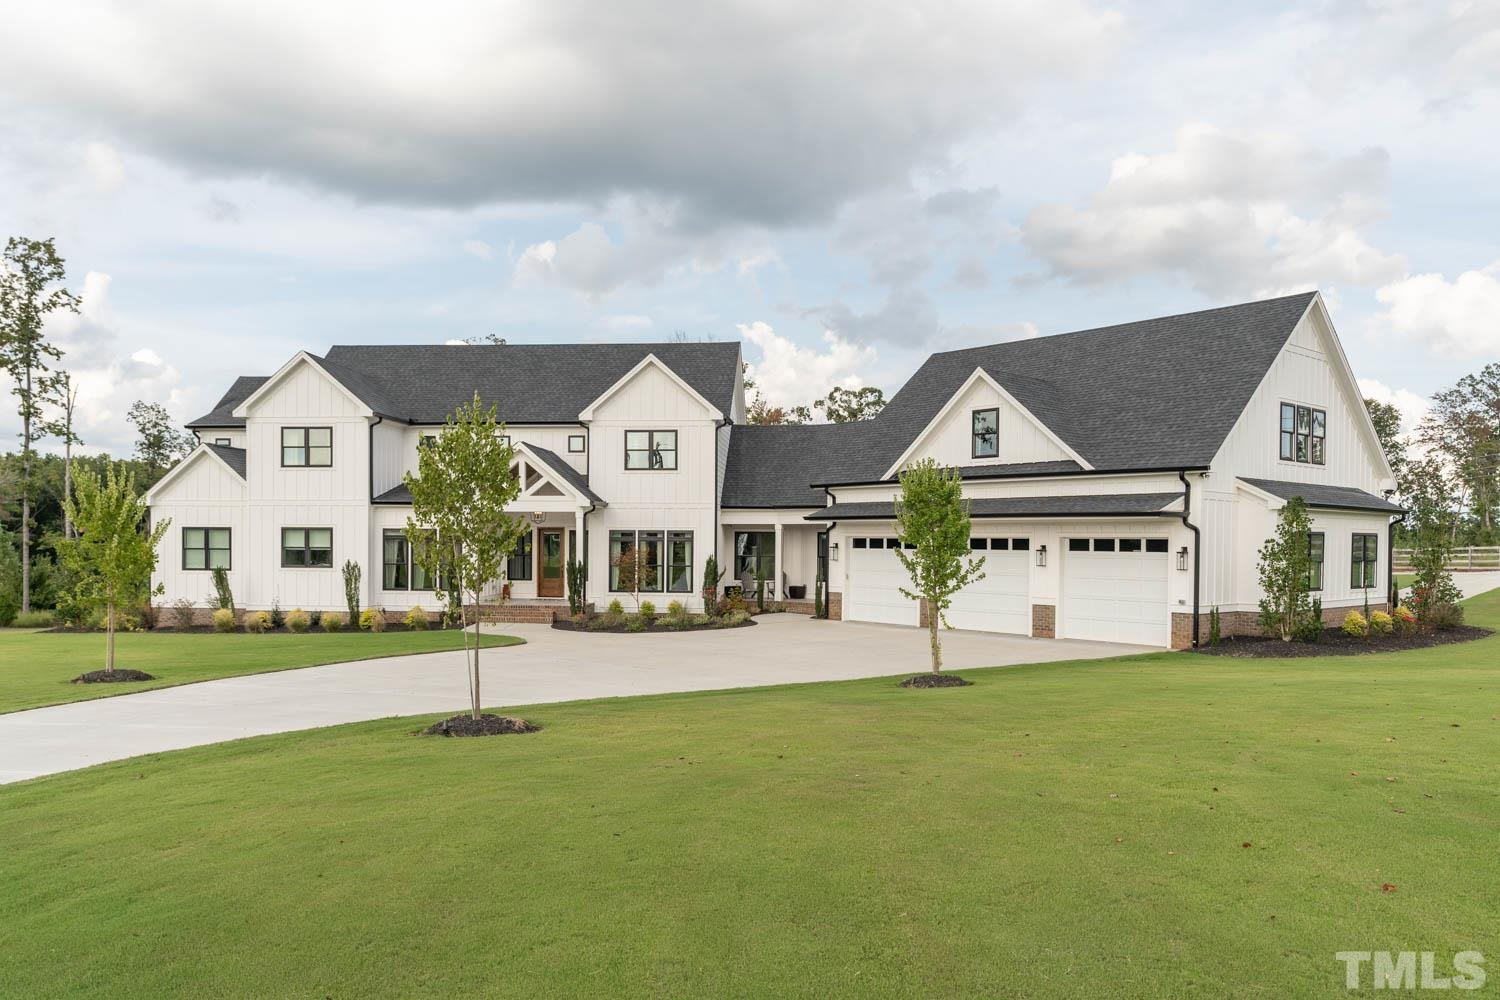 """TRULY ONE OF A KIND! GORGEOUS HIGH END CUSTOM """"MODERN FARMHOUSE"""" w/WOOD BURNING STOVE, CATHEDRAL CYPRESS CEIL & PORCHES, TILE PLANK FLRS 1ST FLR, PORCHES & GARAGE FLRS, THERMADOR KITCHEN SUITE 48""""FRIDGE/FREEZER,TWIN DISHWASHERS, 11' WIN-DOOR-OUTDOOR KITCHEN w/BUILT-IN GAS GRILLS PLUS, AUDIO THROUHTOUT, ENTERTAINERS DELIGHT, 1st FLR & 2nd FLR OWNERS SUITE, CONCRETE QUARTZ FINISH OZONE/UV SANITIZATION IN GROUND POOL, HOT TUB, WATERFALL, WALK-IN SAFE ROOM, 5 CAR TANDEM GARAGE, CONDITIONED 40X50 DETACHED SHOP"""